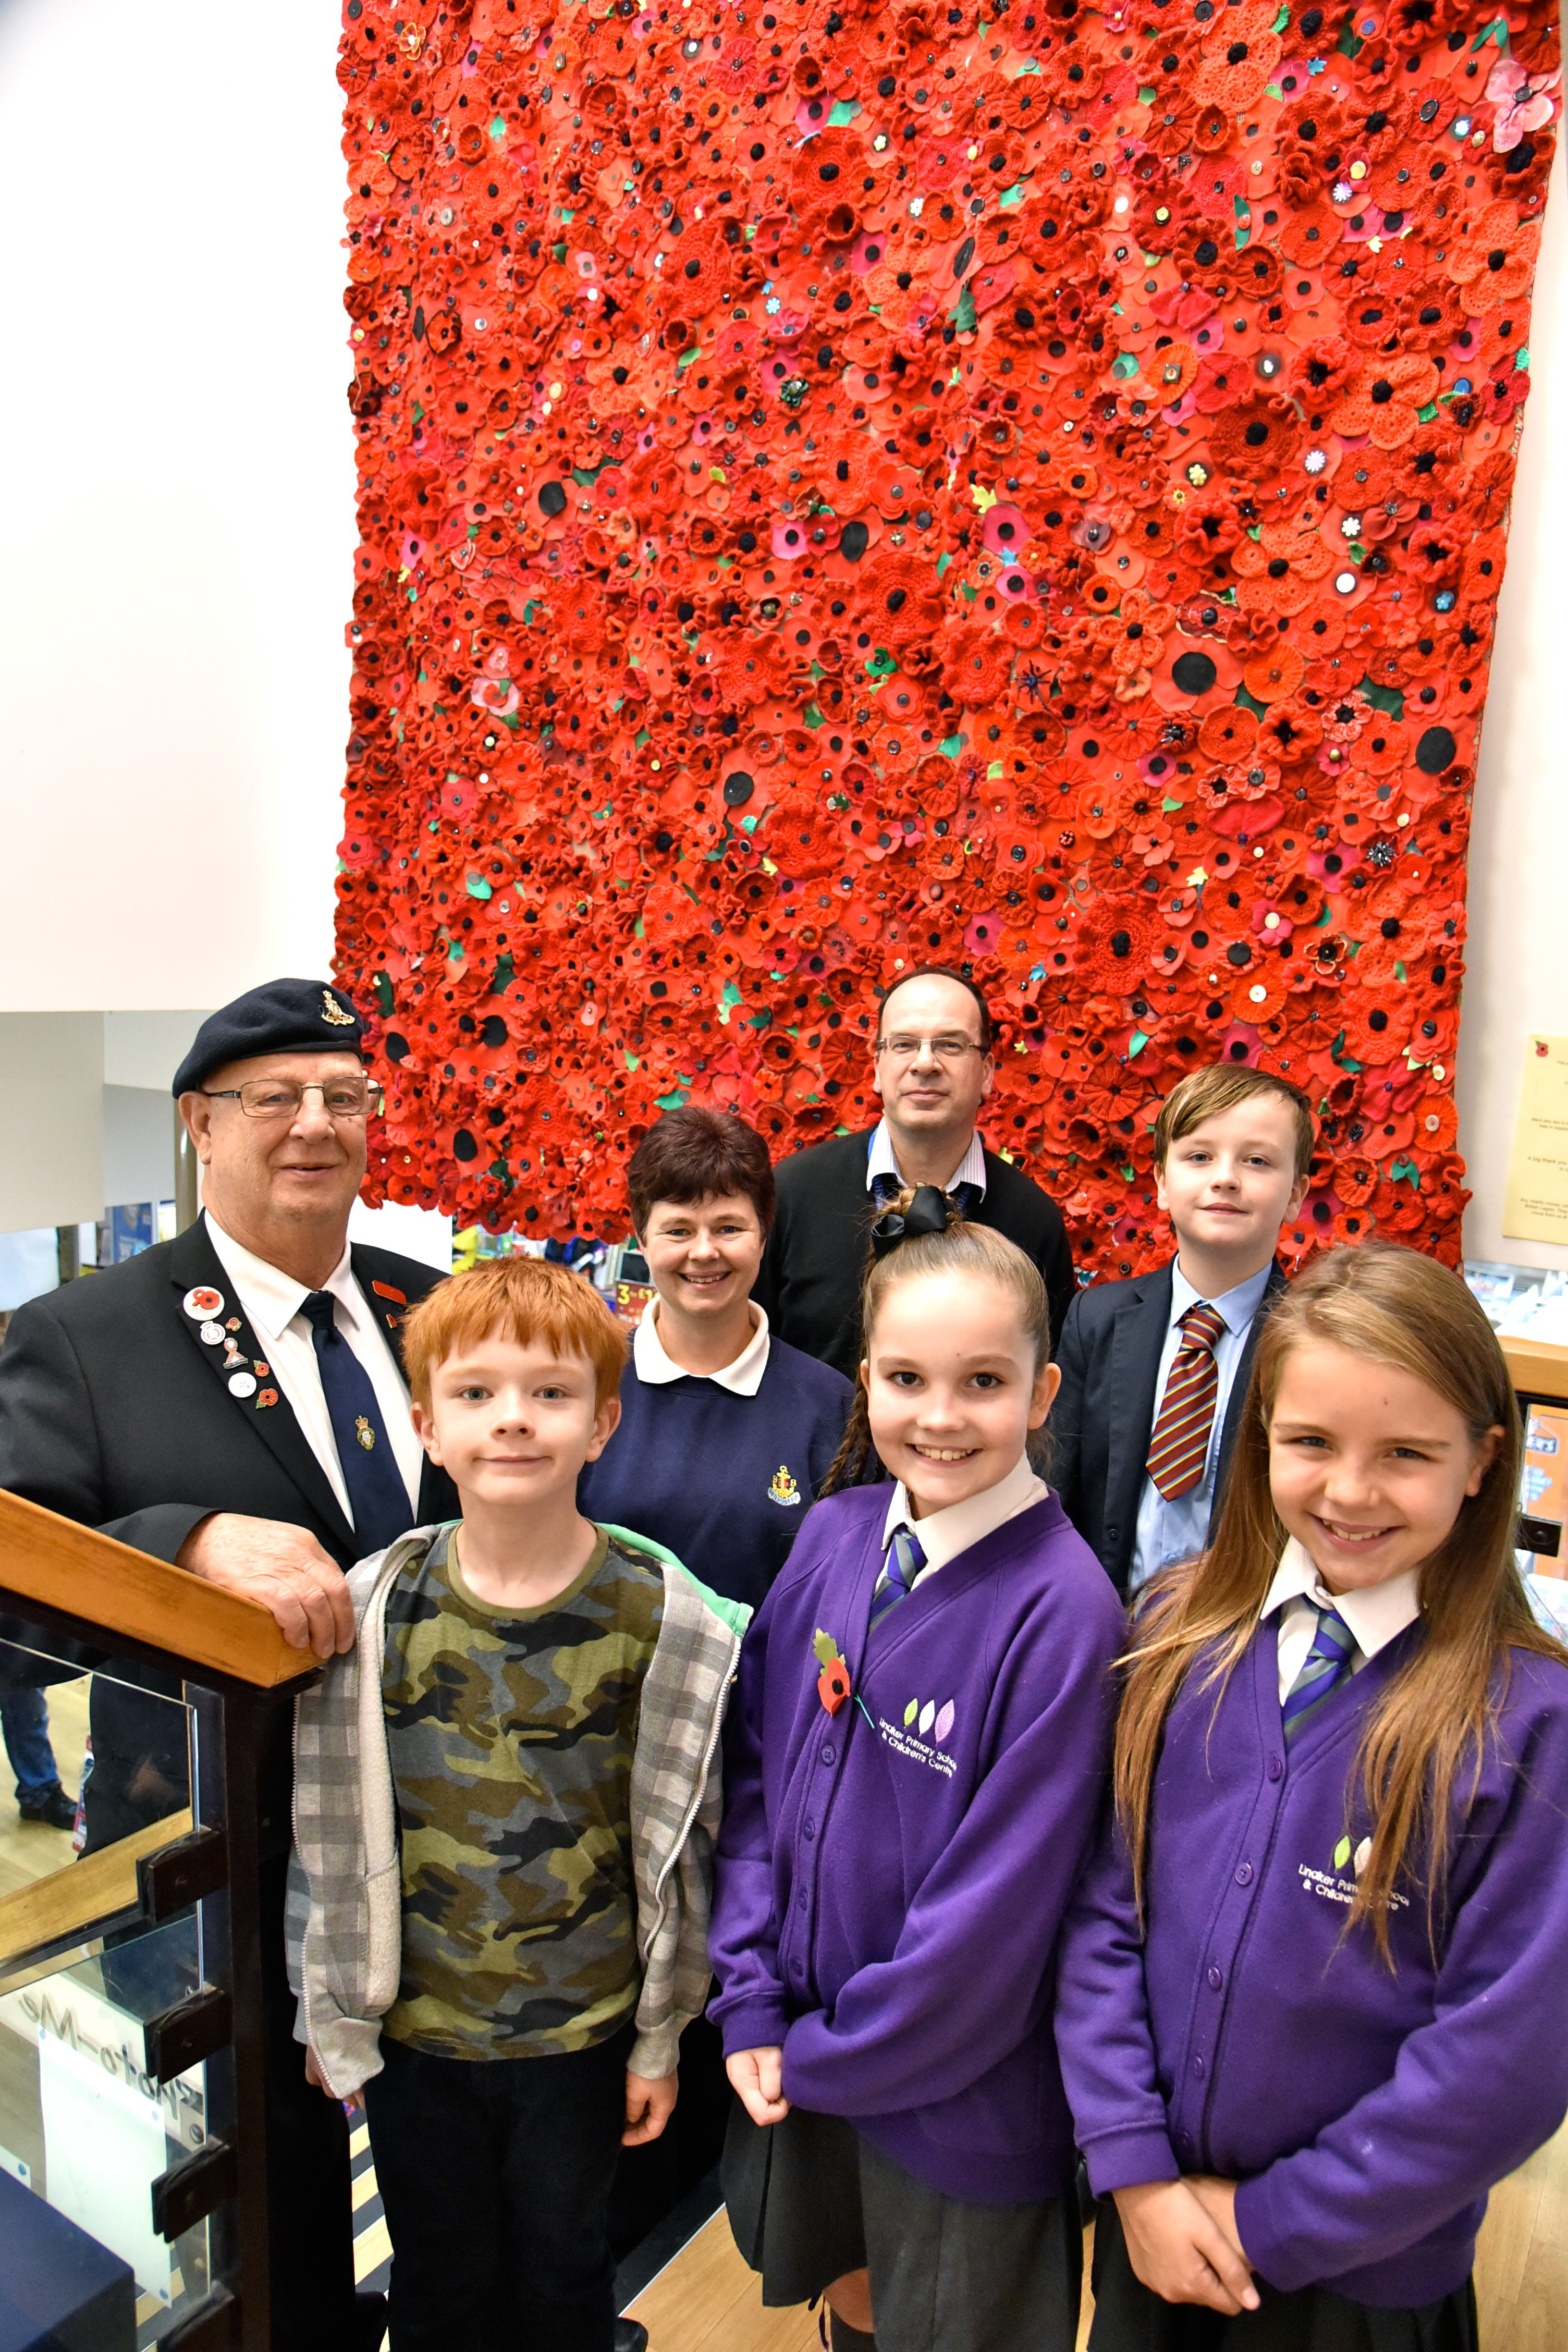 Thousands of hand-knitted poppies donated to store